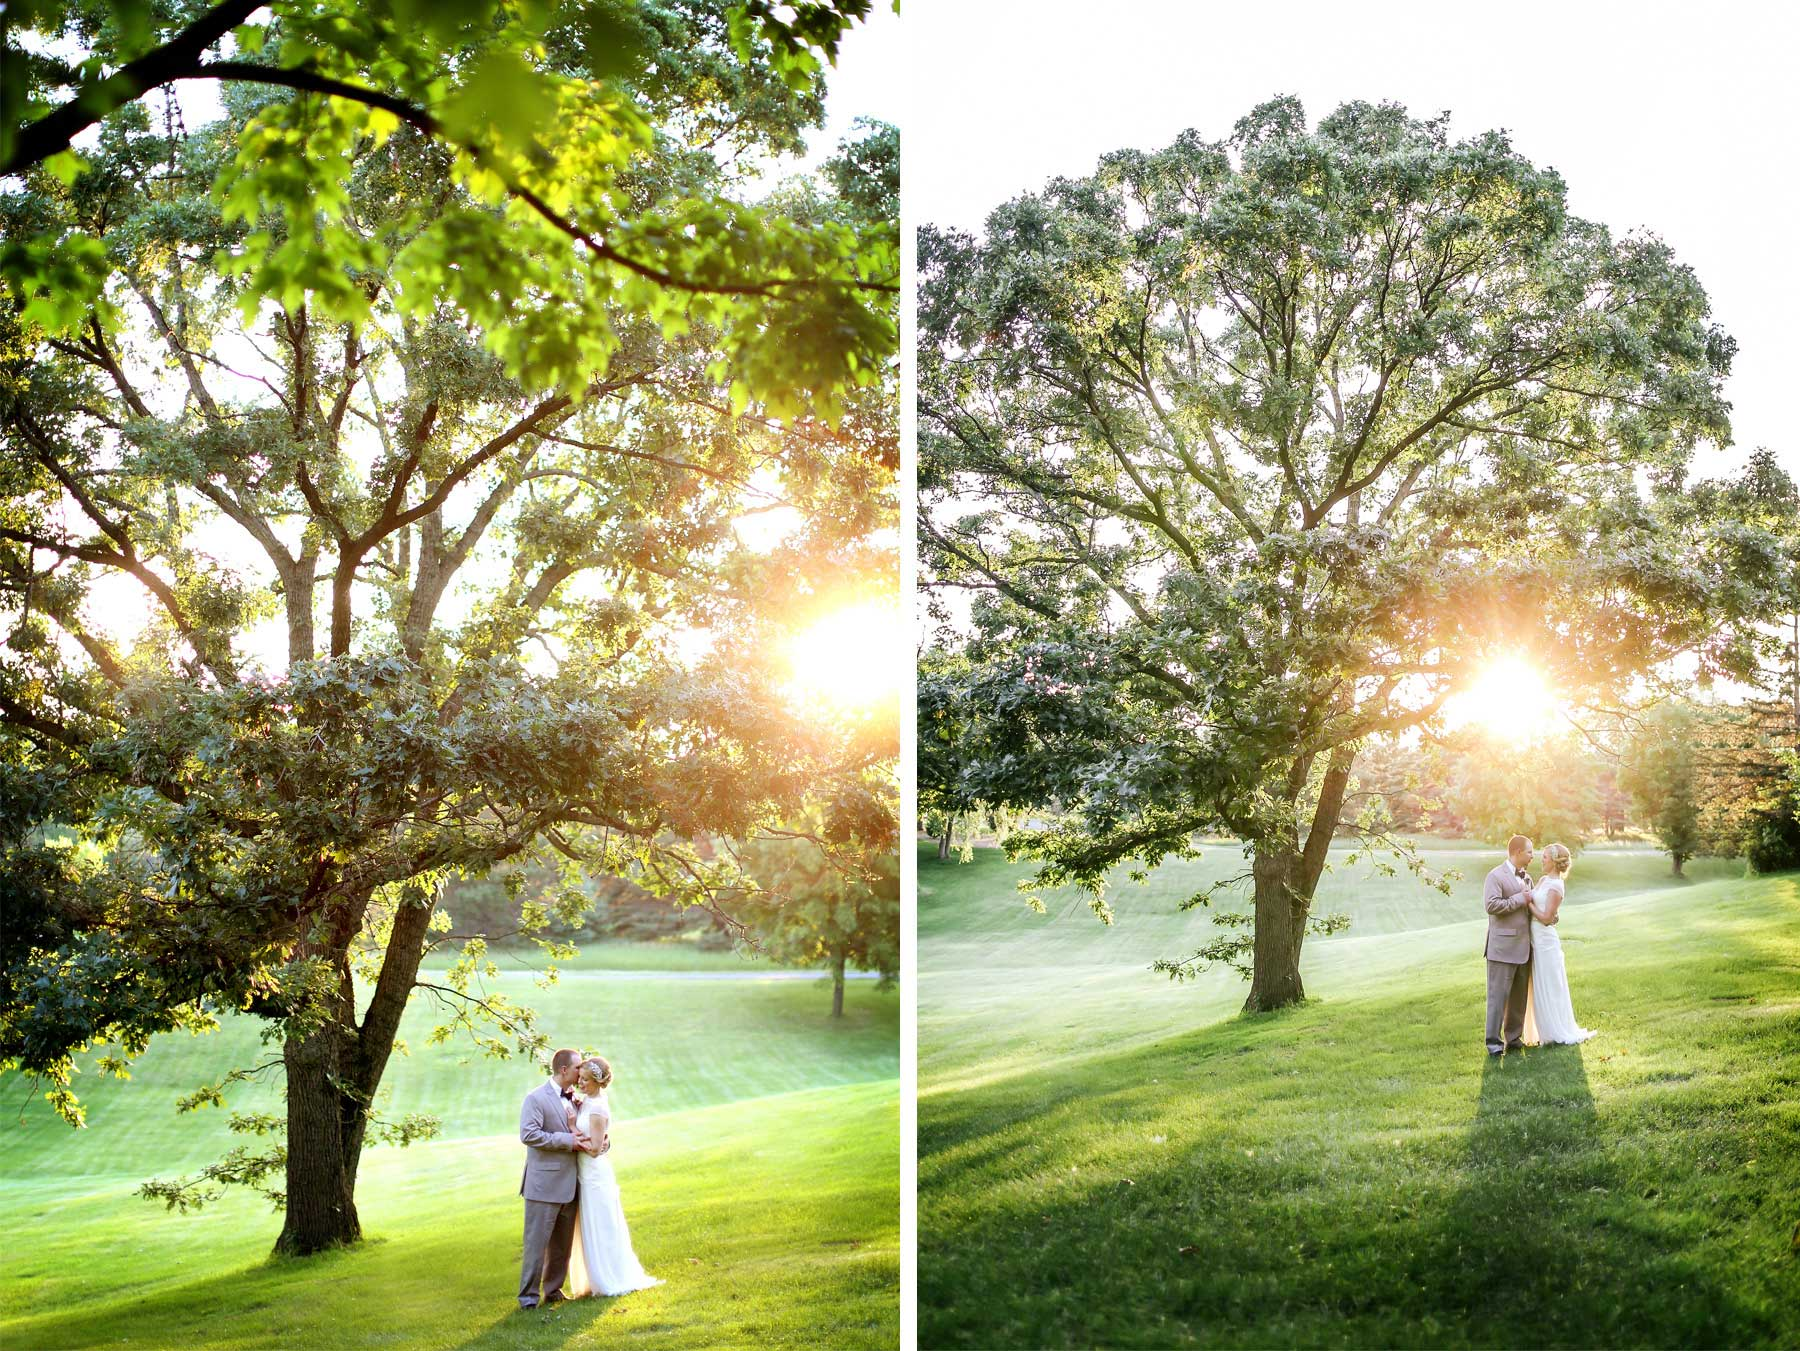 15-Minneapolis-MN-Wedding-Photography-by-Vick-Photography-North-Oaks-Country-Club-Sunset-Alyssa-&-Blake.jpg